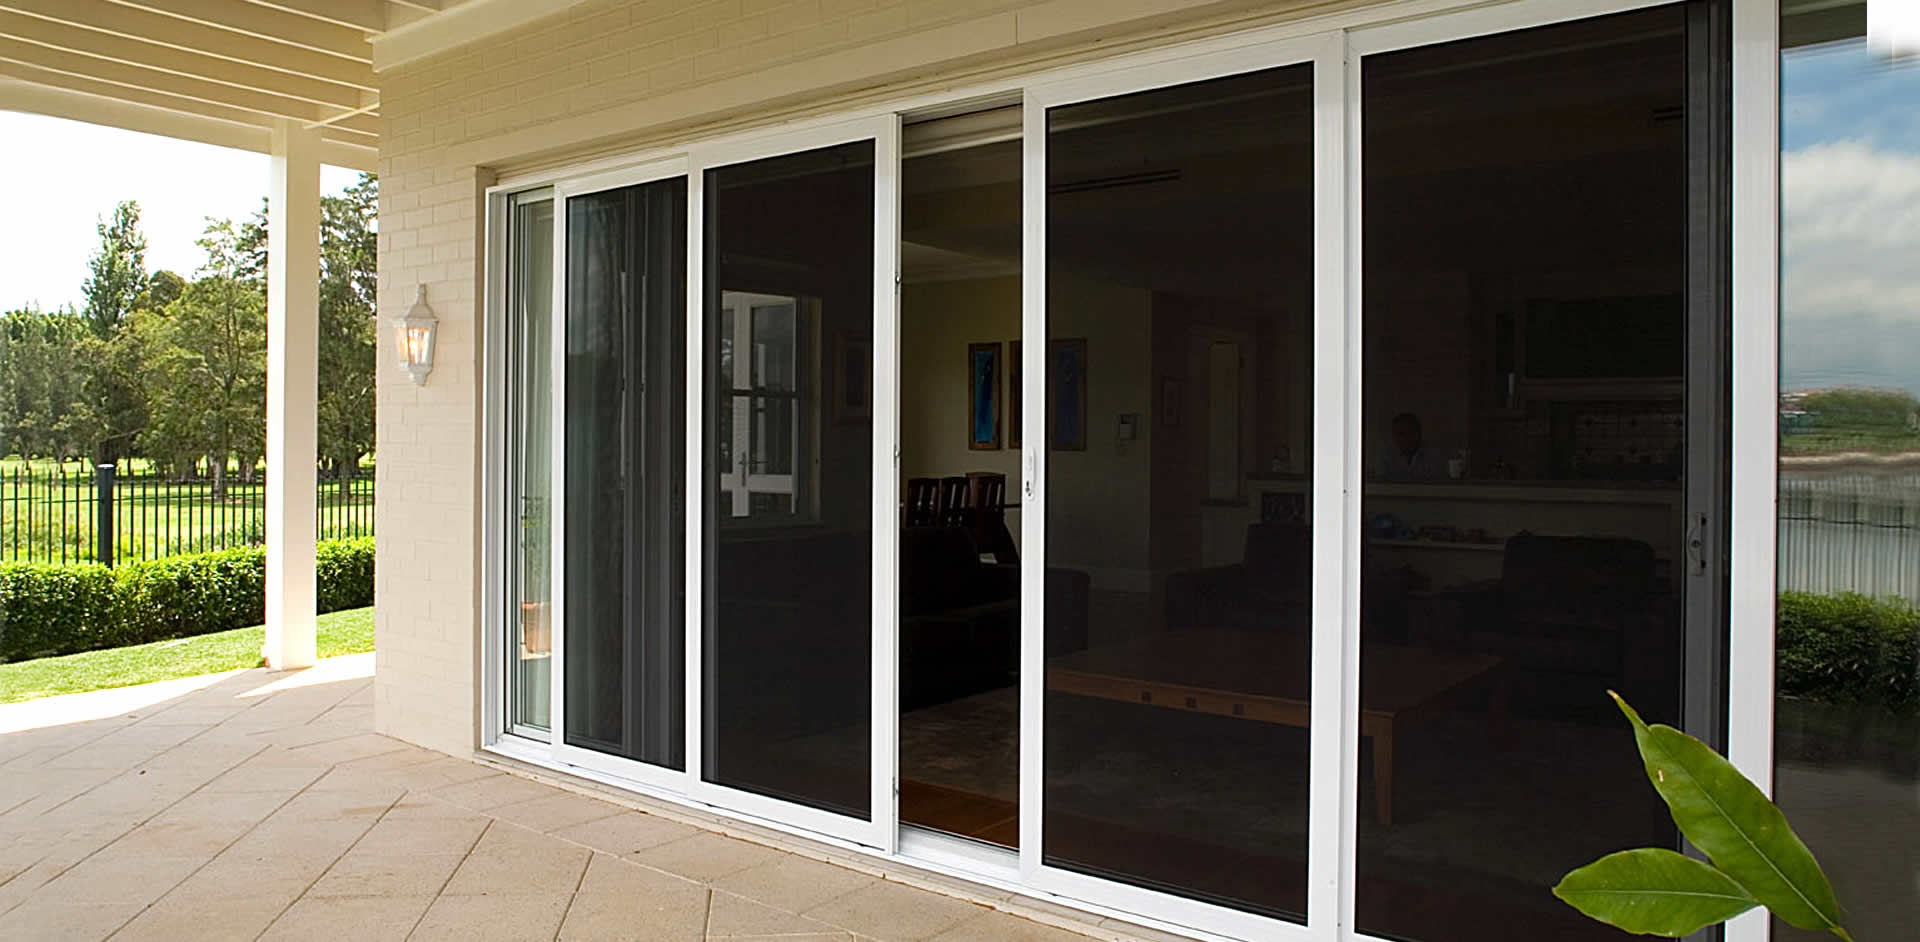 Are There Security Screen Doors For Sliding Glass Doorssecurity screens for doors and windows shade and shutter systems